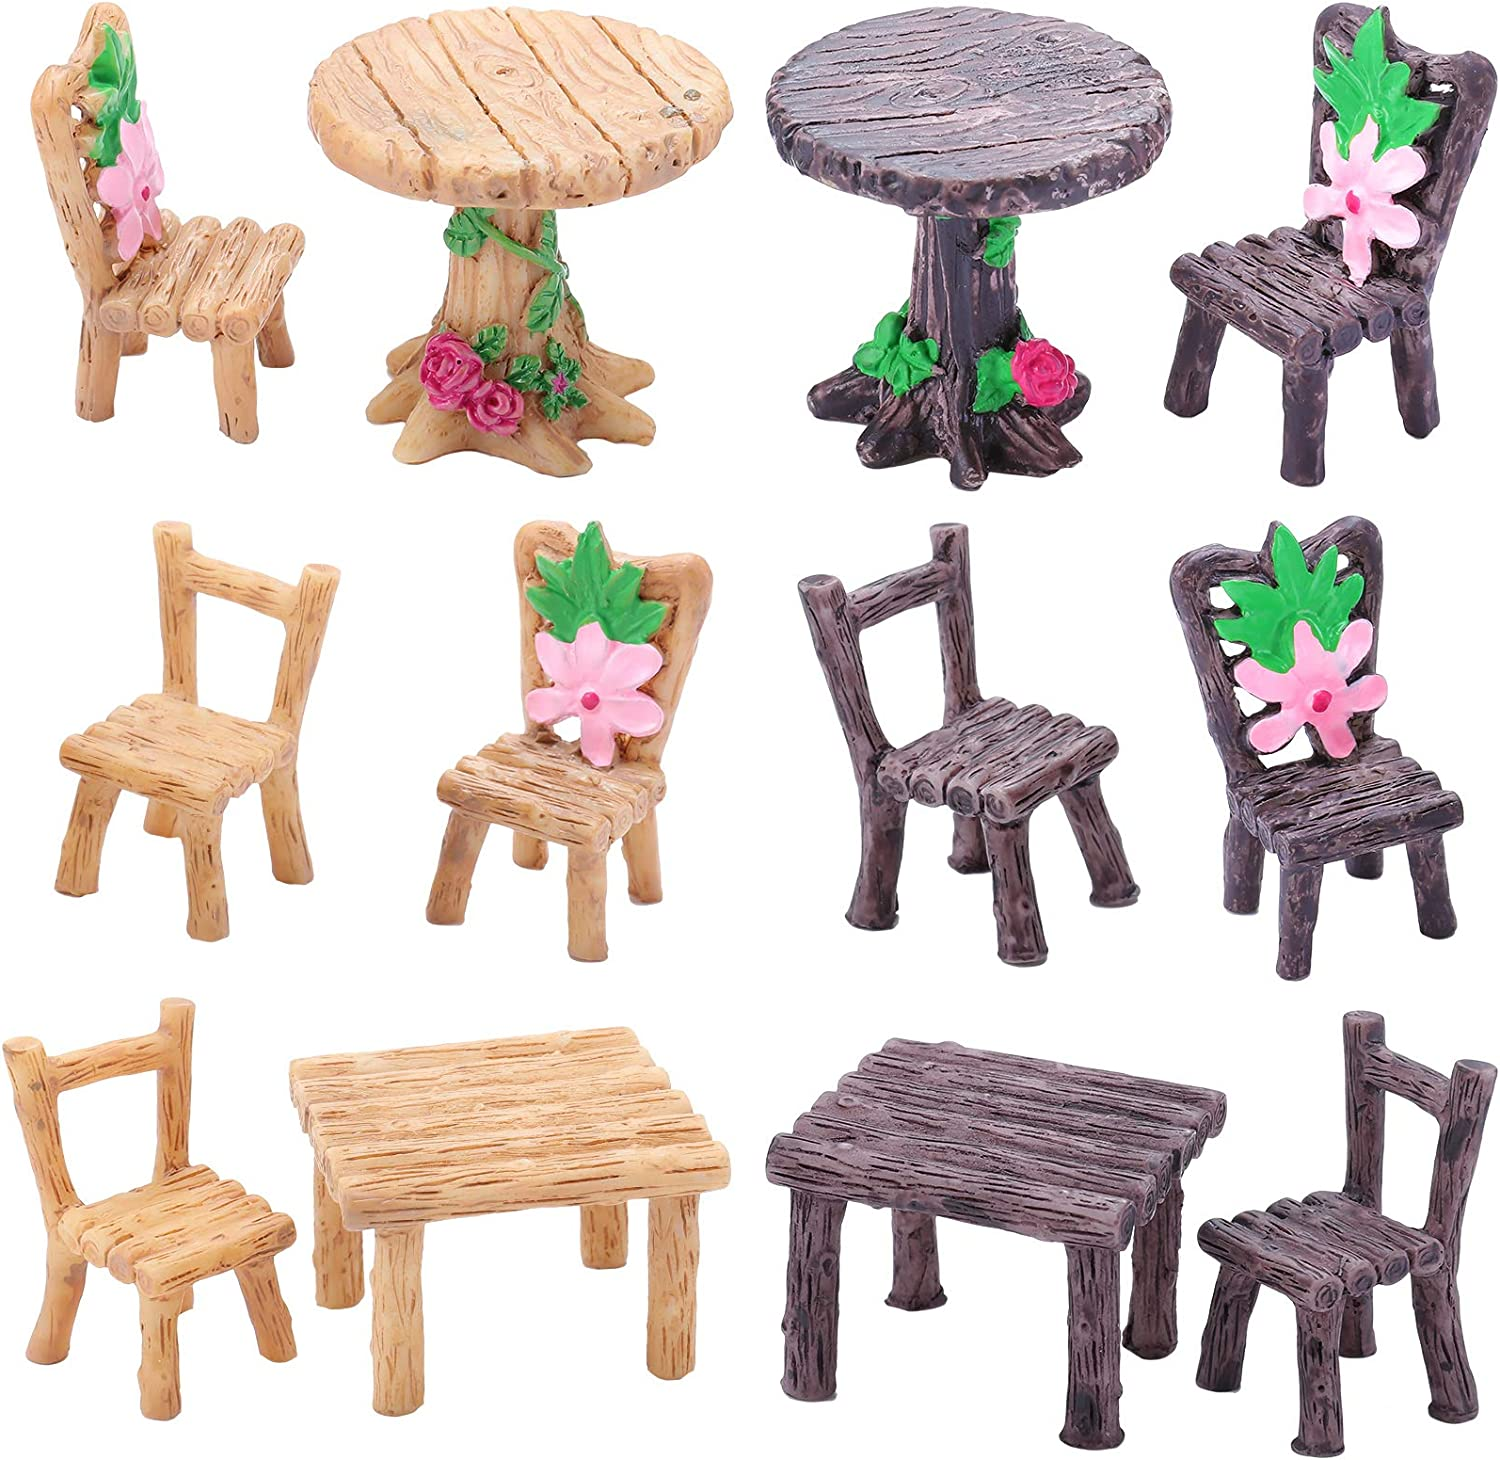 Skylety 12 Pieces Miniature Table and Chairs Set, Wooden Fairy Garden Furniture Ornaments Dollhouse Resin Fairy Table Chair for Dollhouse Accessories Home Micro Landscape Decoration